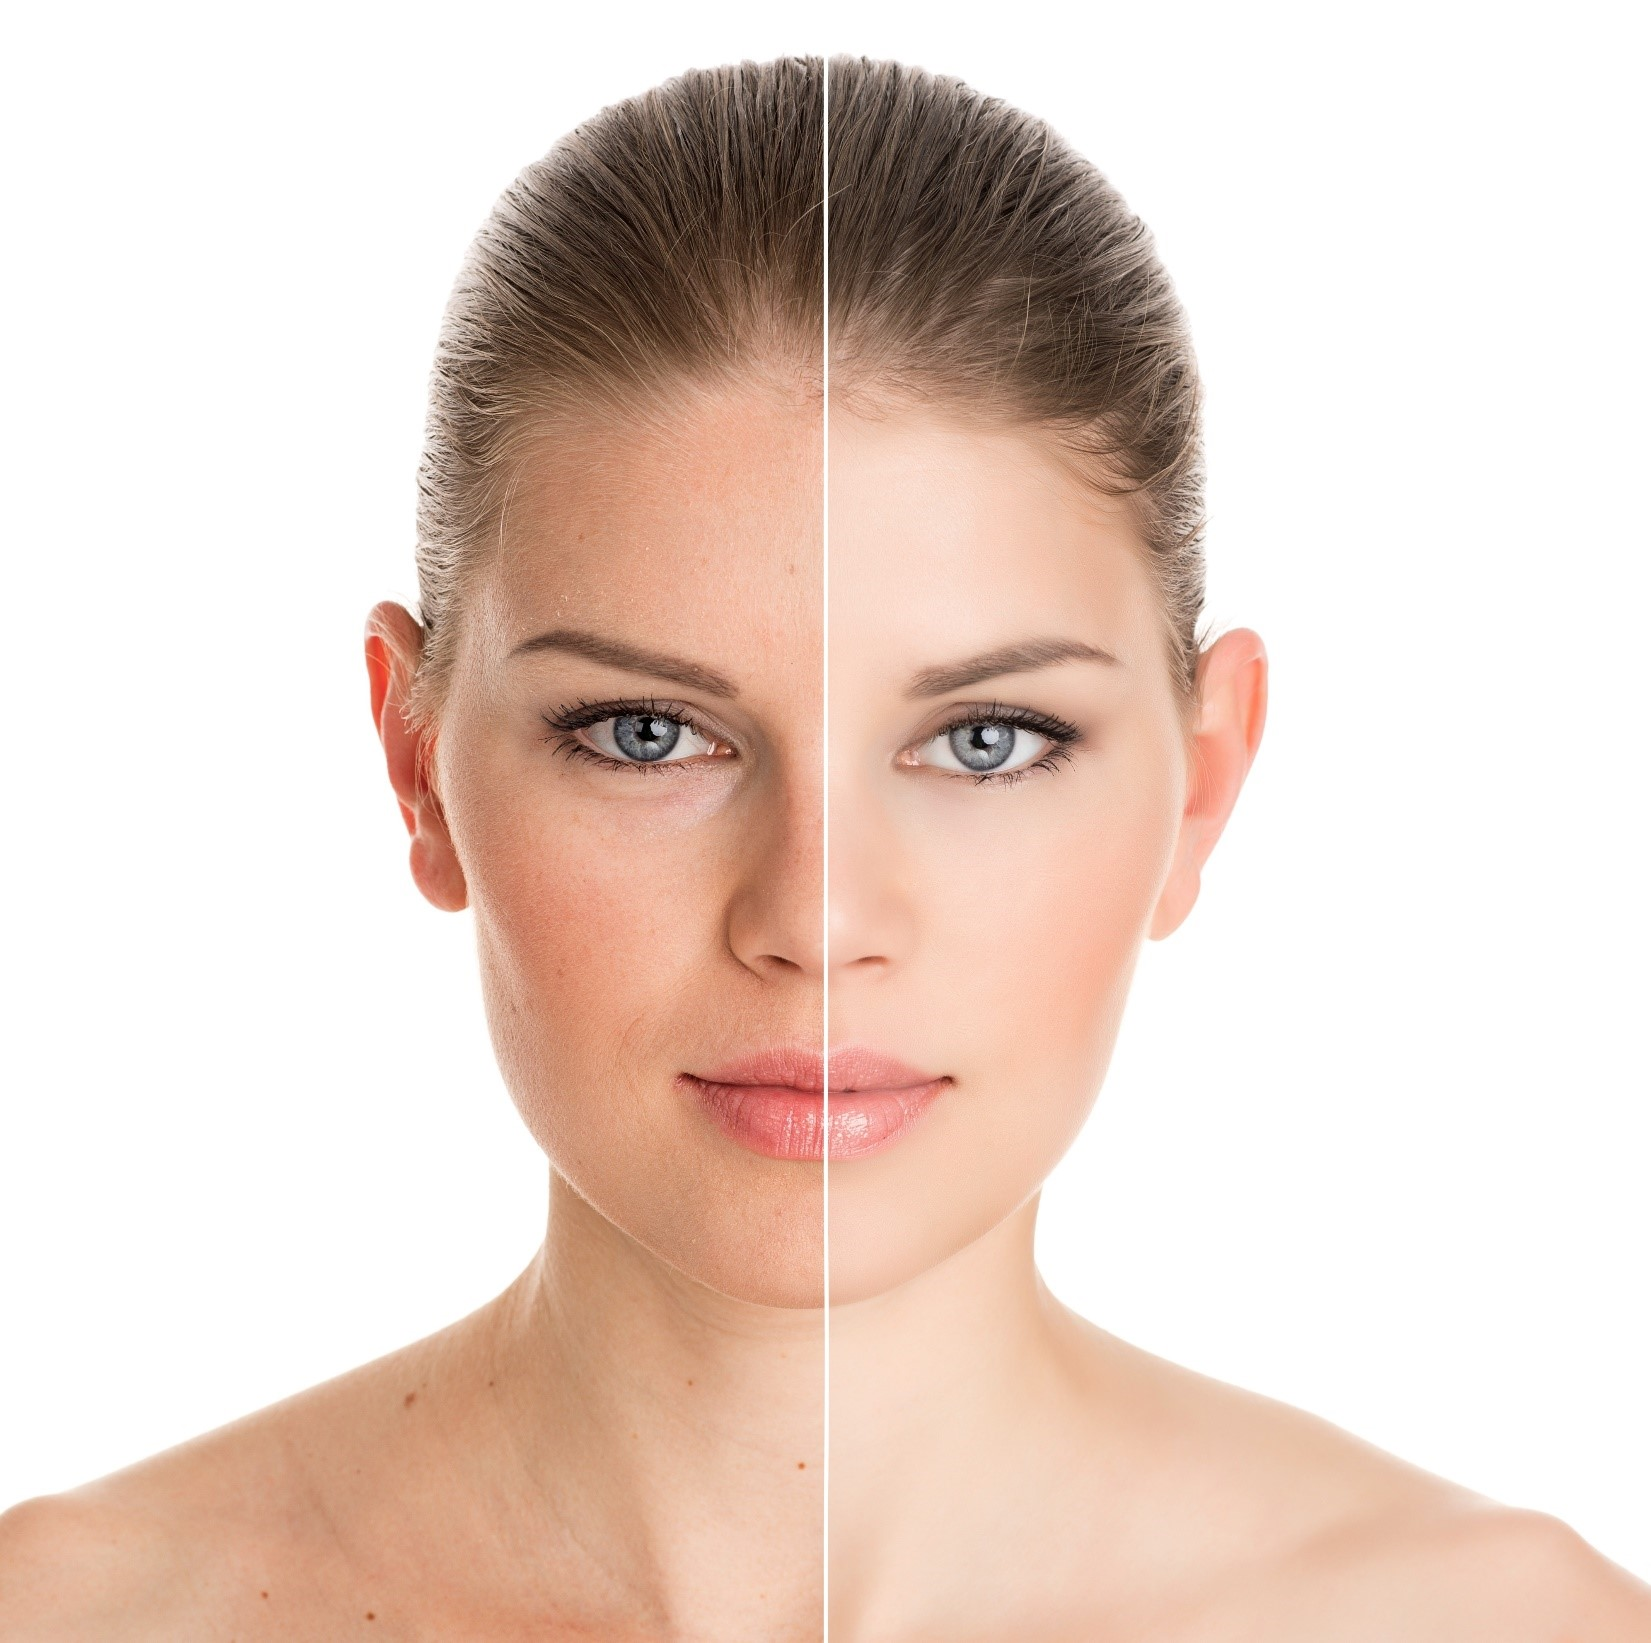 Dry, Blotchy Or Oily Skin? Try These Tips